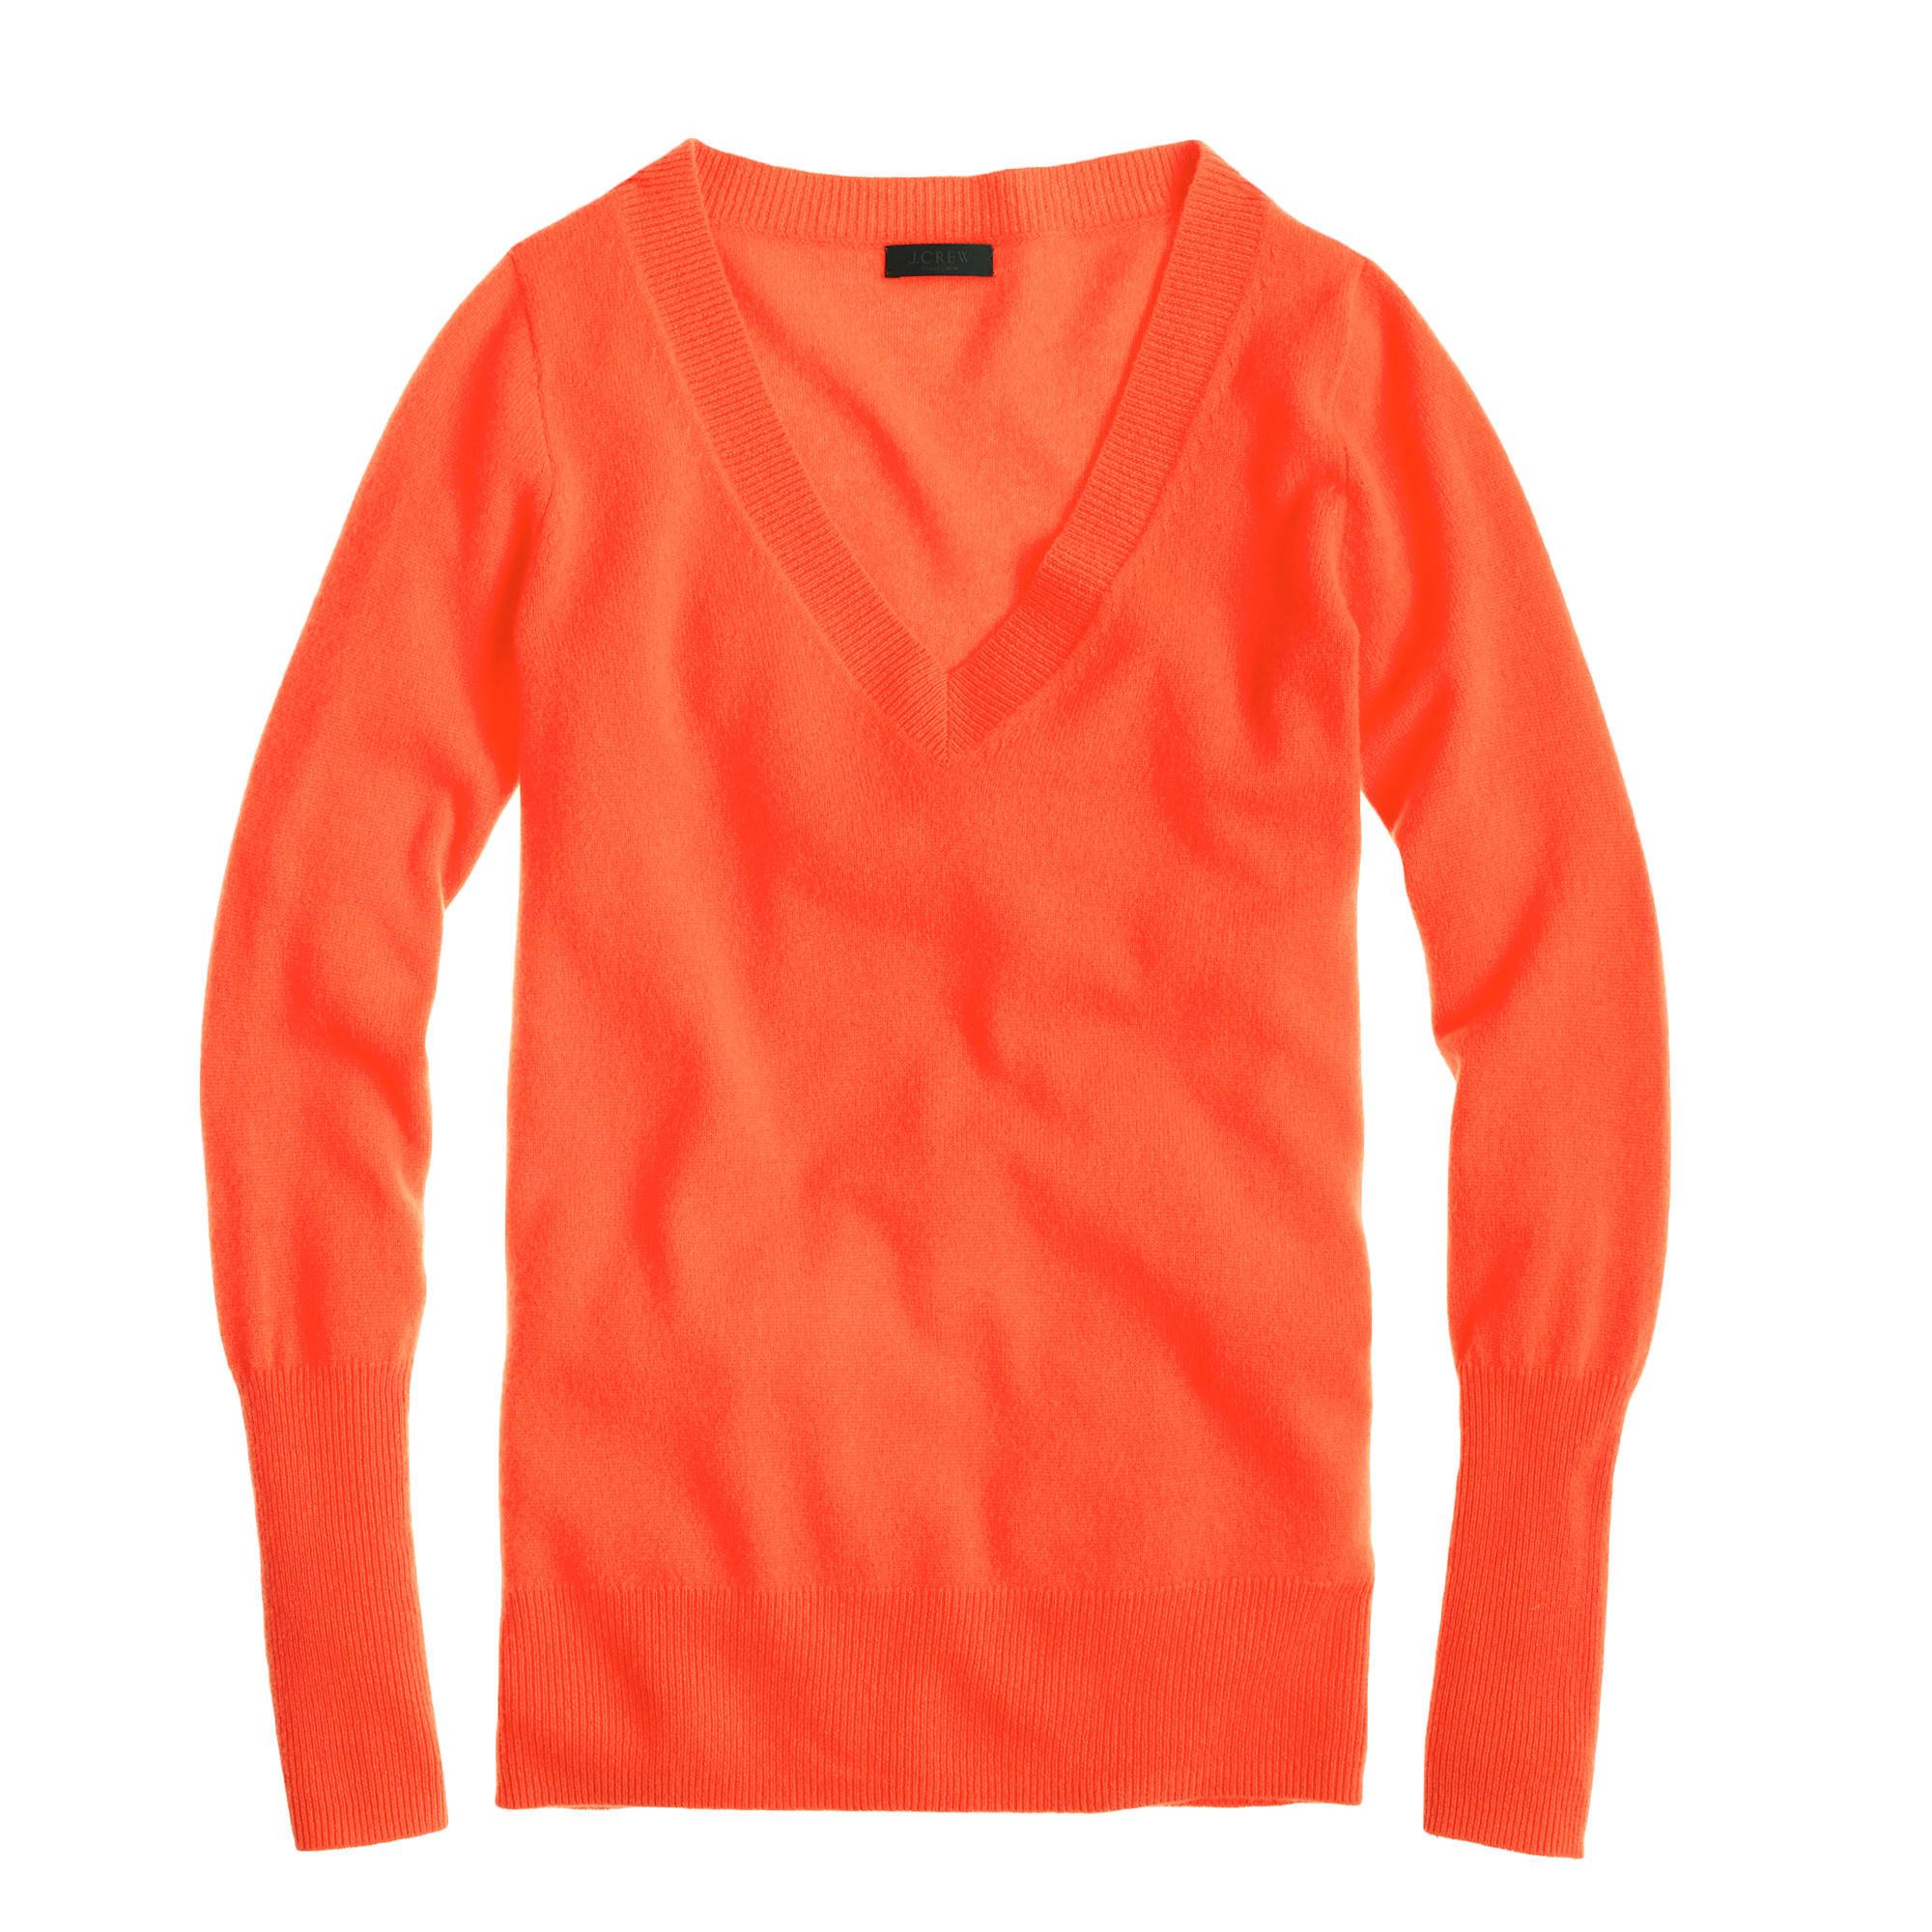 J.crew Collection Cashmere V-Neck Sweater in Orange | Lyst